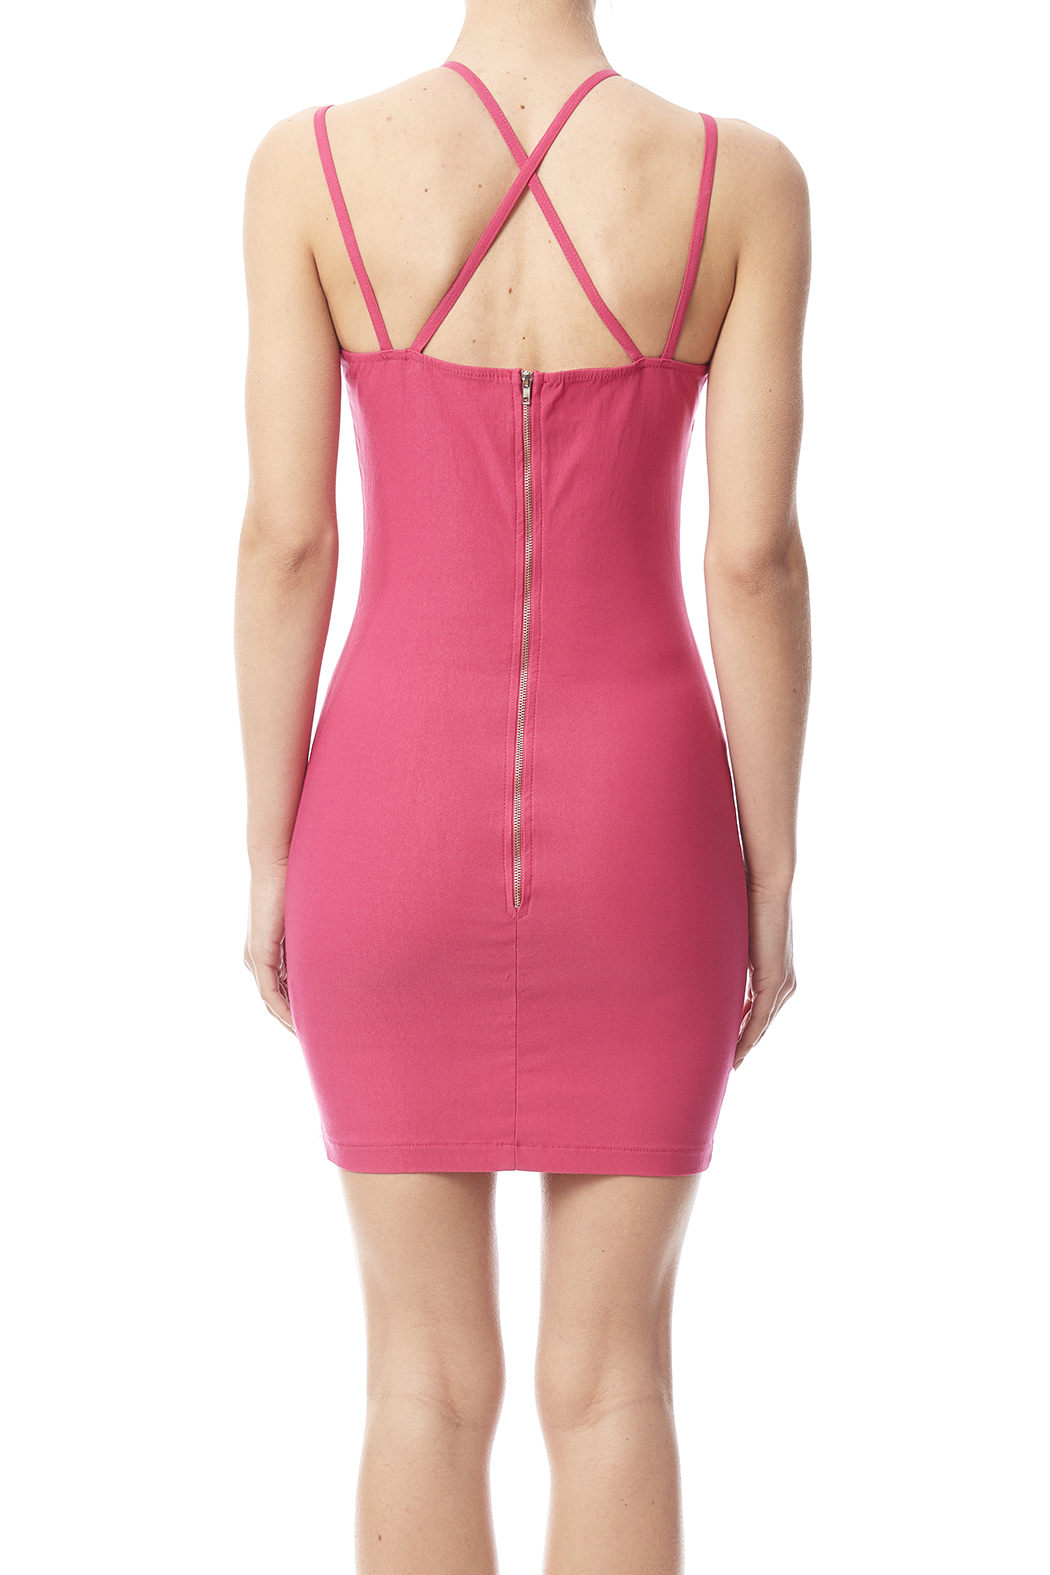 W by Wenjie Pink Cross-Back Dress - Back Cropped Image